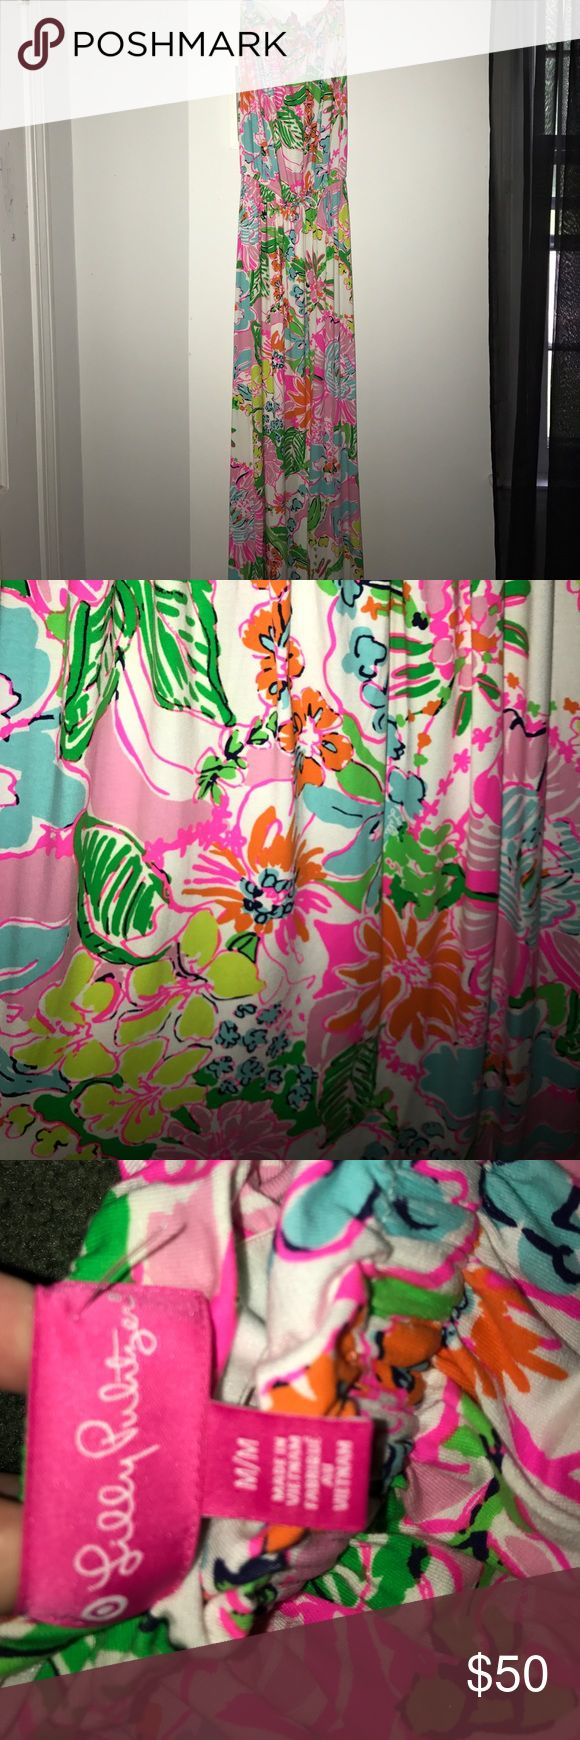 """Lilly Pulitzer for Target maxi dress Strapless Lilly P maxi dress. I'm 5'7"""" & it covers my feet completely. Only worn once, in perfect condition.  Size Medium but fits a small Lilly Pulitzer for Target Dresses Maxi"""